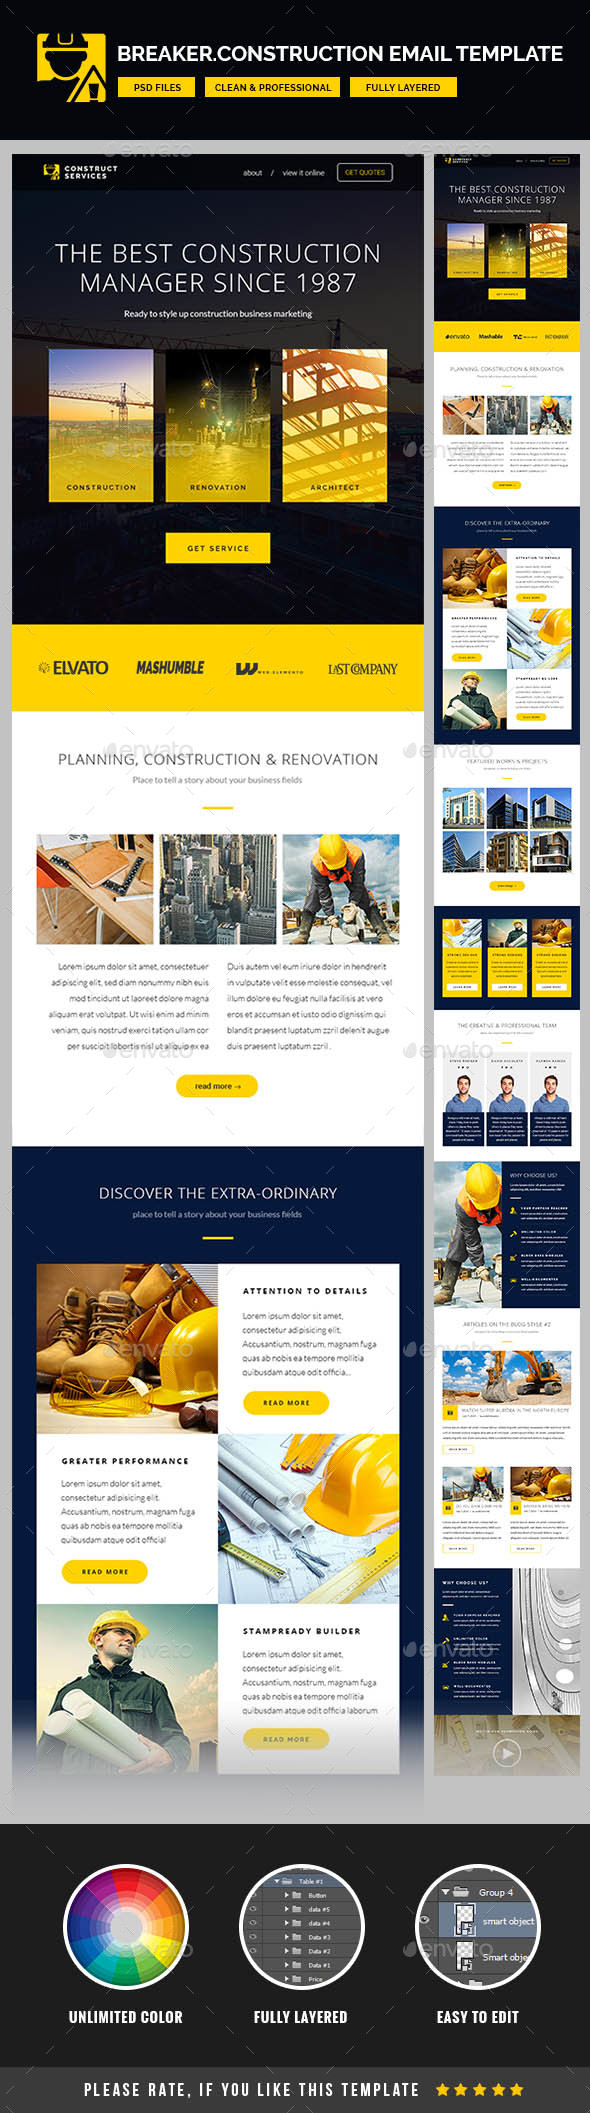 Breaker for Construction Company – Email Template PSD | E-newsletters